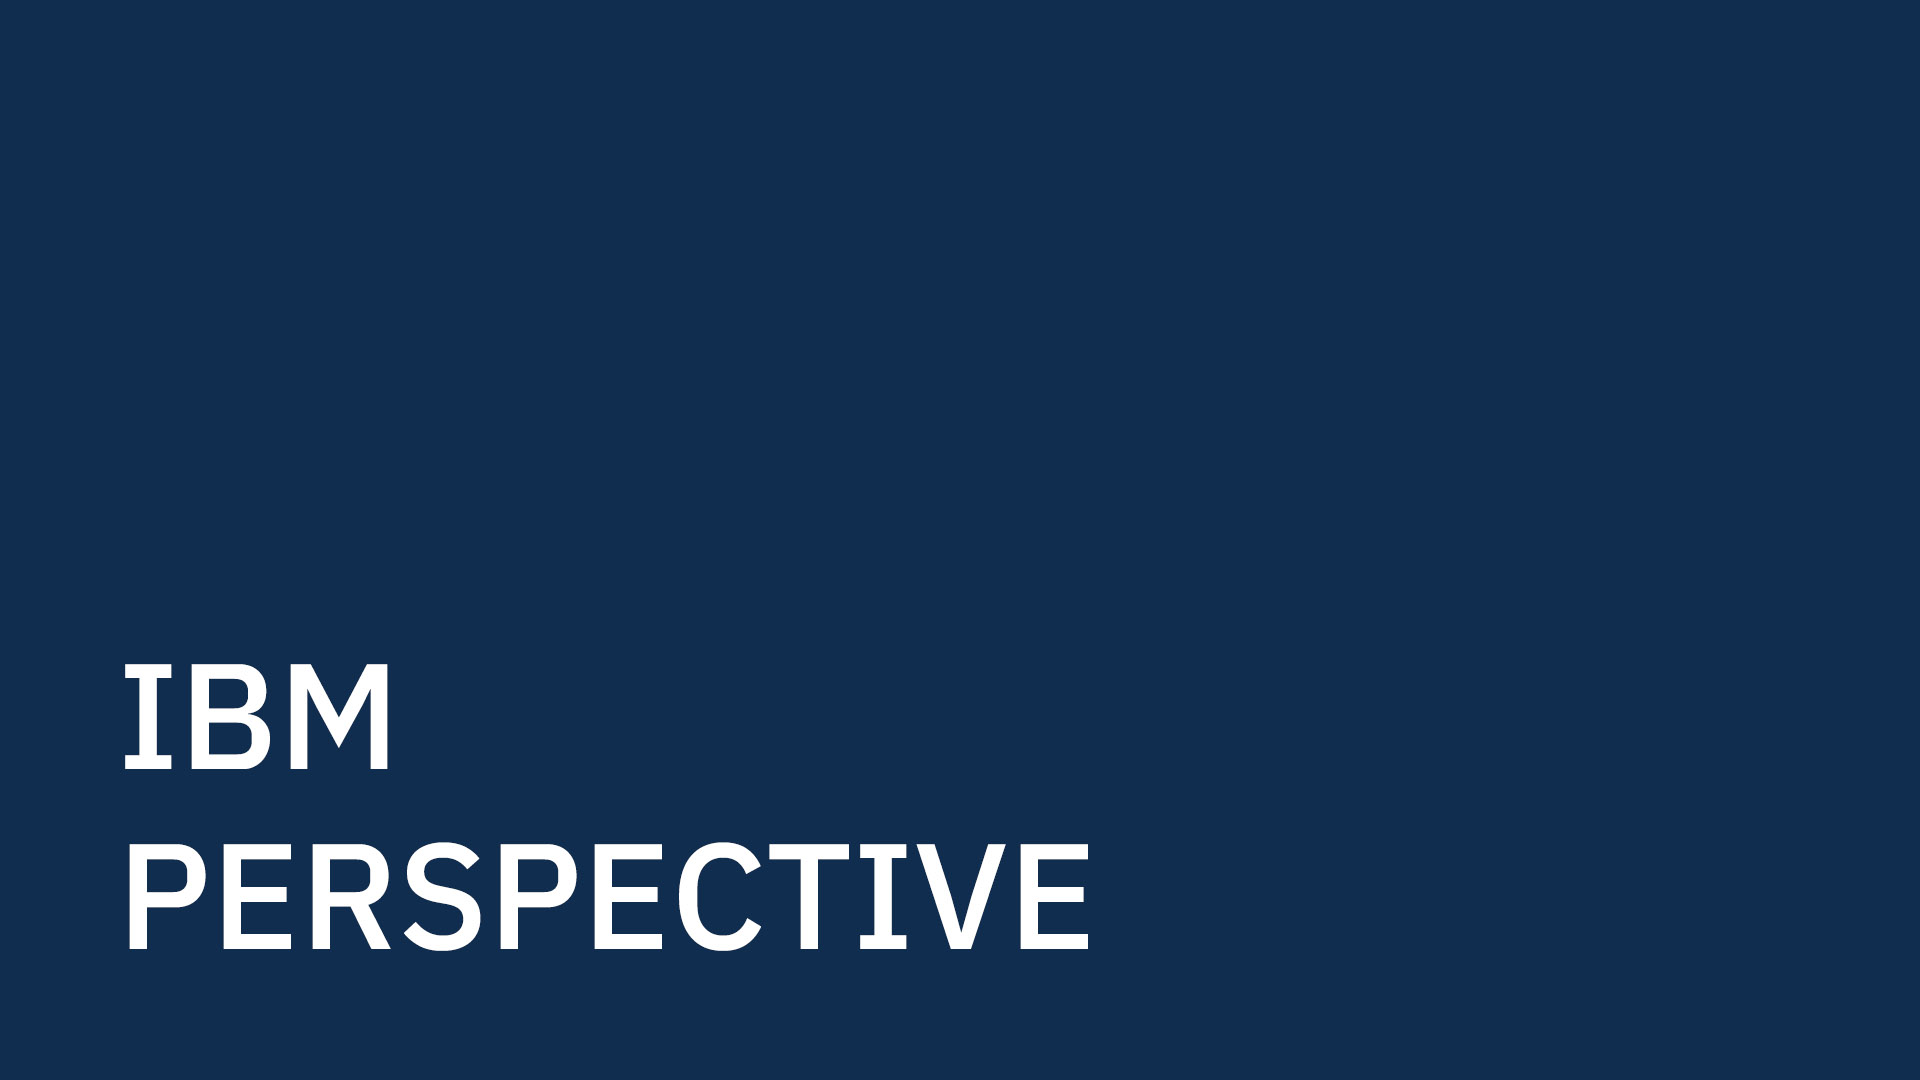 IBM Perspective text on blue background